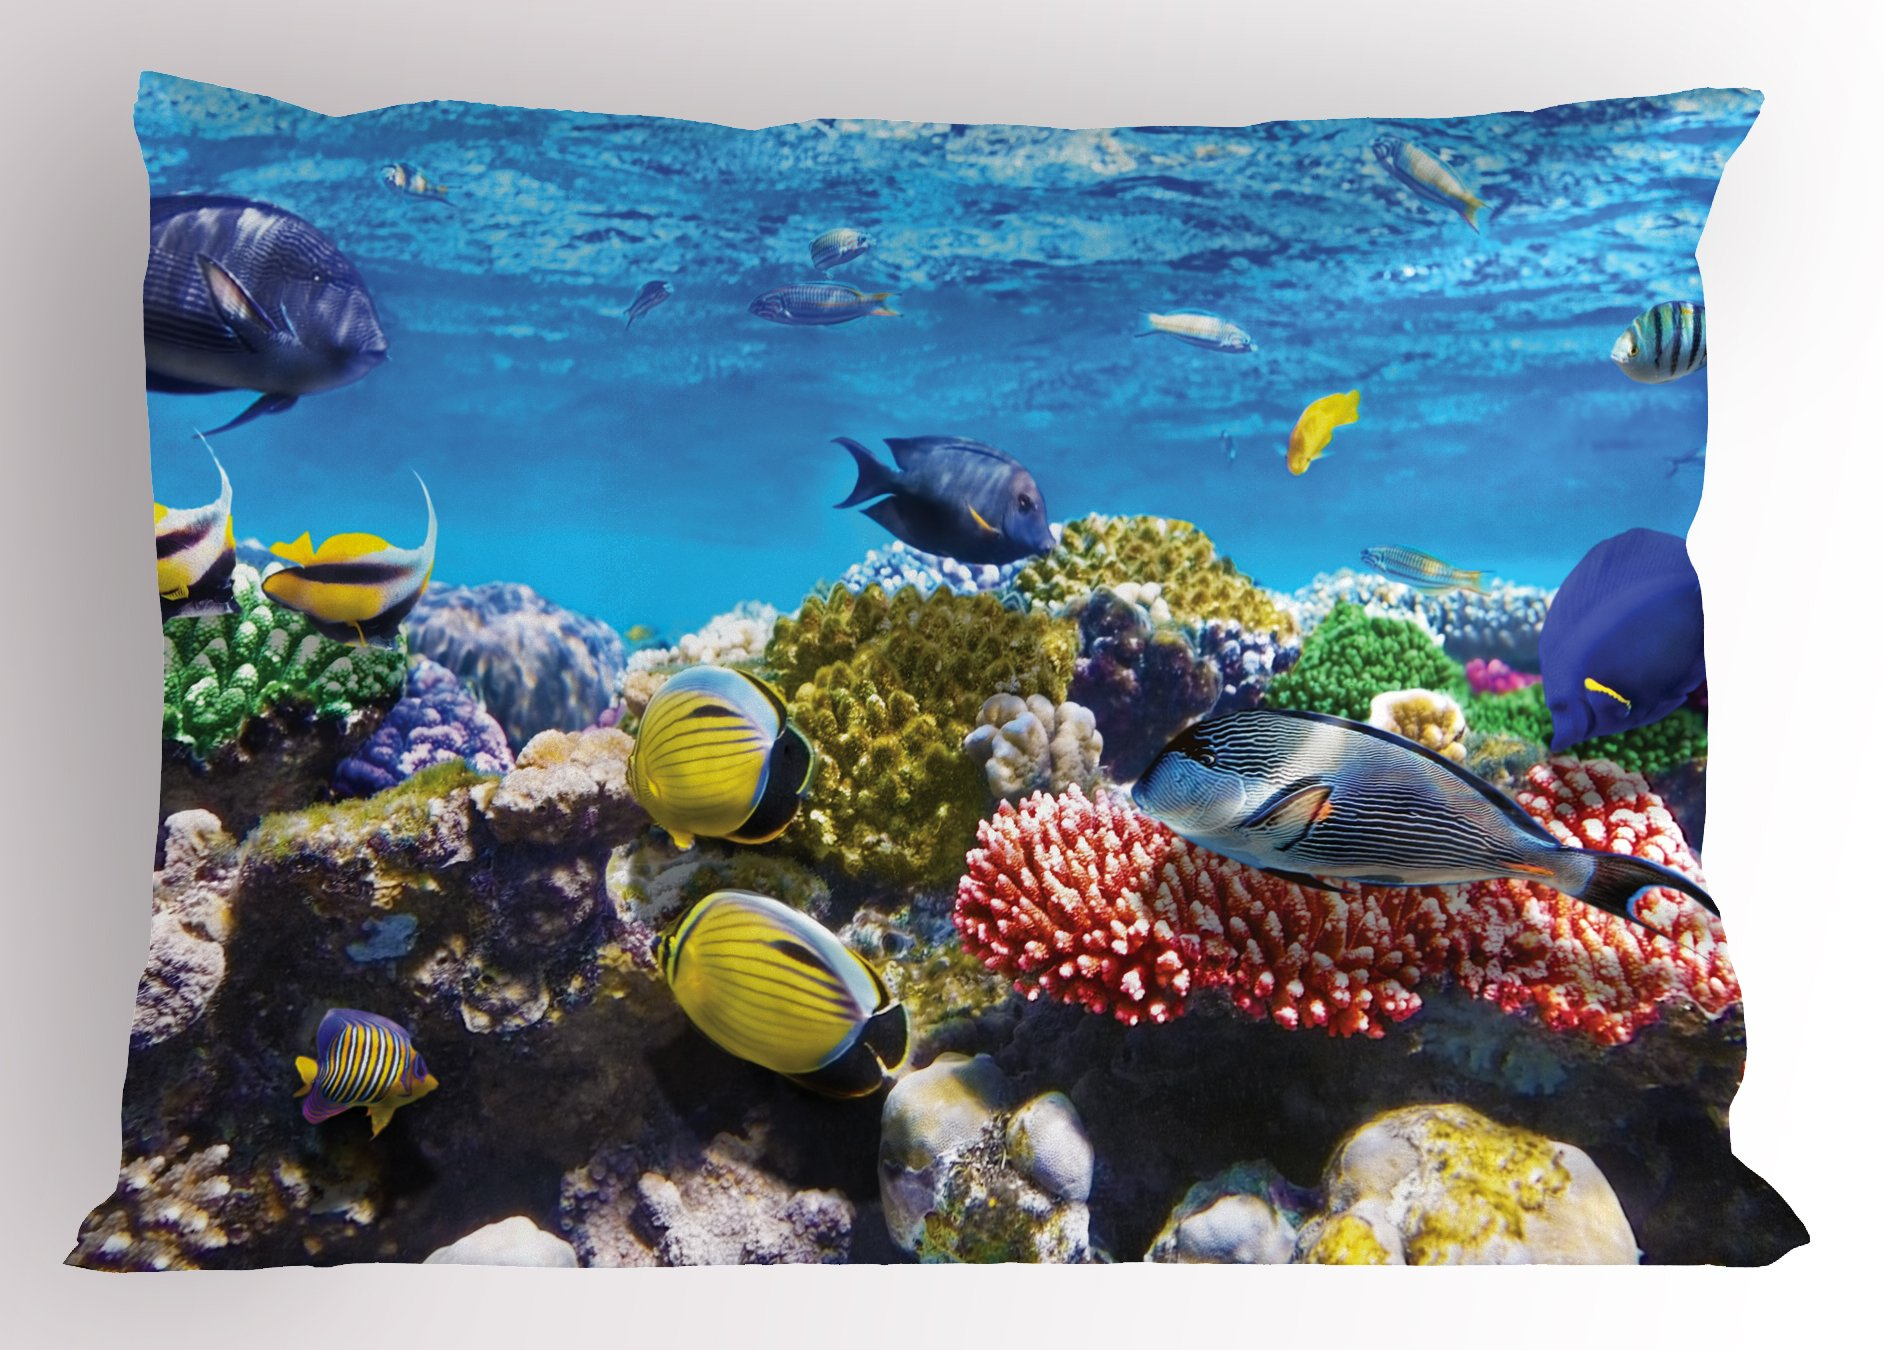 Lunarable Ocean Pillow Sham, Tropical Corals Fish School Natural Life in Shallow Underwater Marine Seascape Image, Decorative Standard King Size Printed Pillowcase, 36 X 20 inches, Multicolor